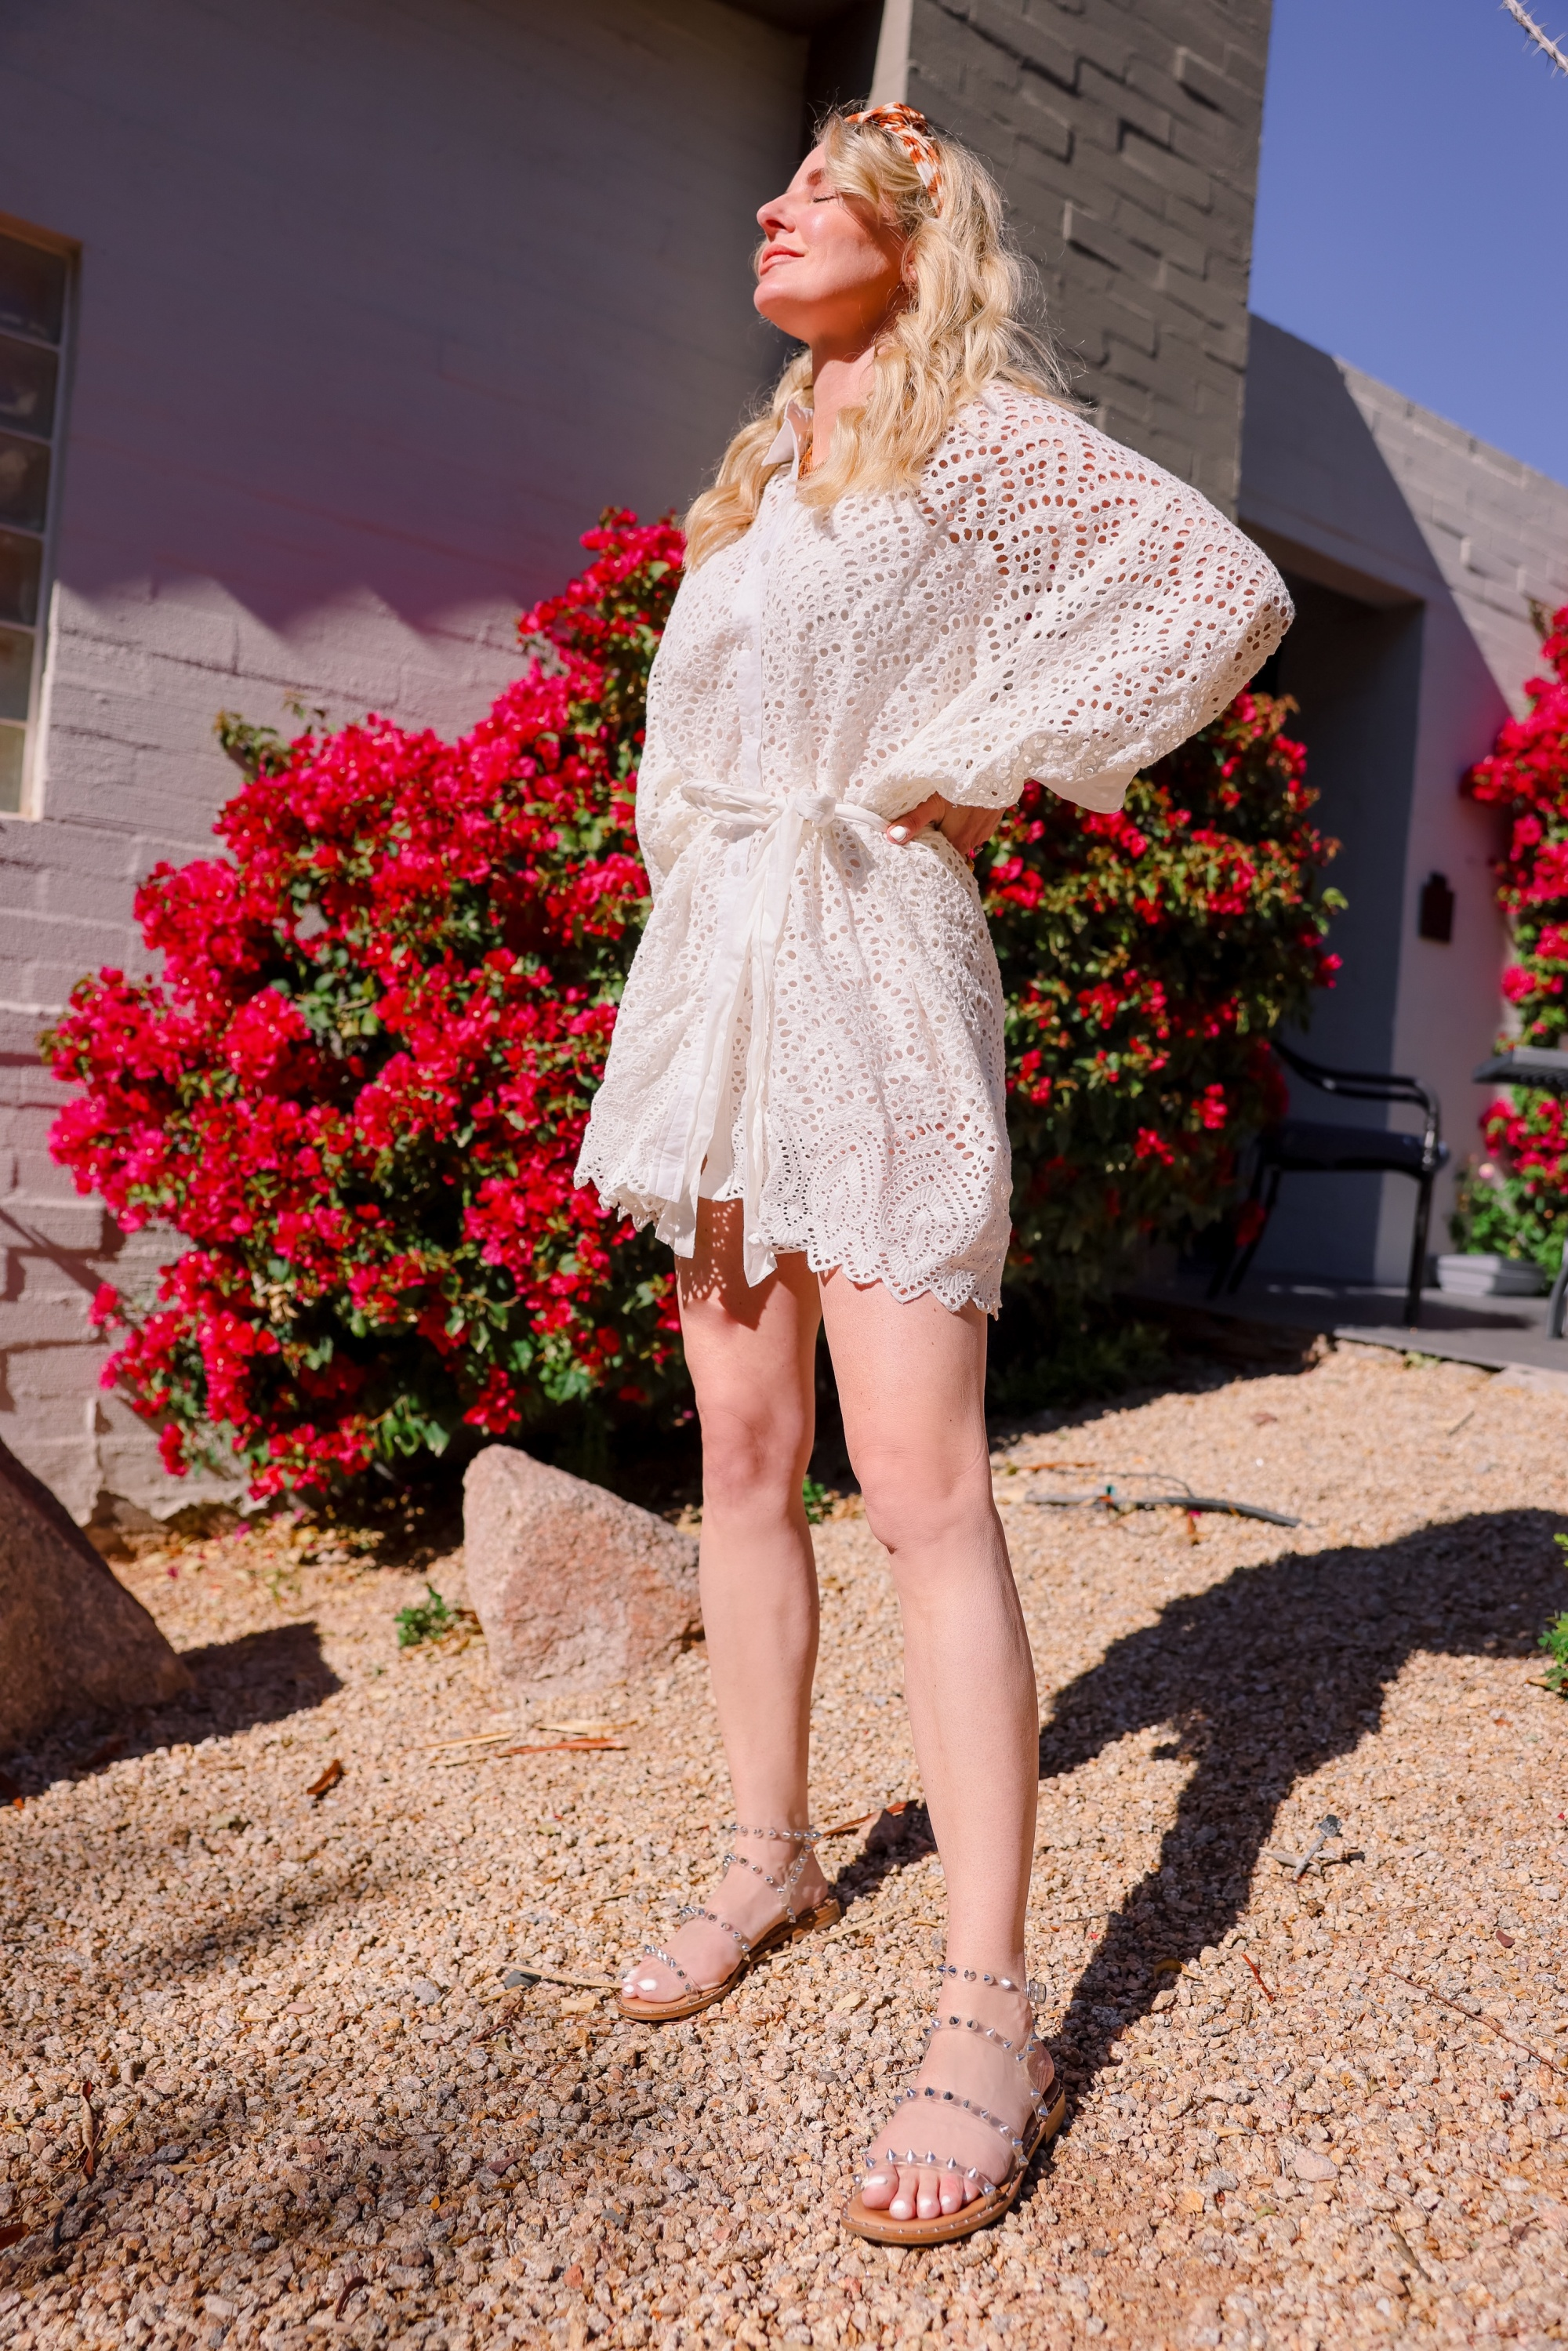 White dresses for spring and summer featuring eyelet white shirtdress by sundress on fashion over 40 blogger Erin Busbee